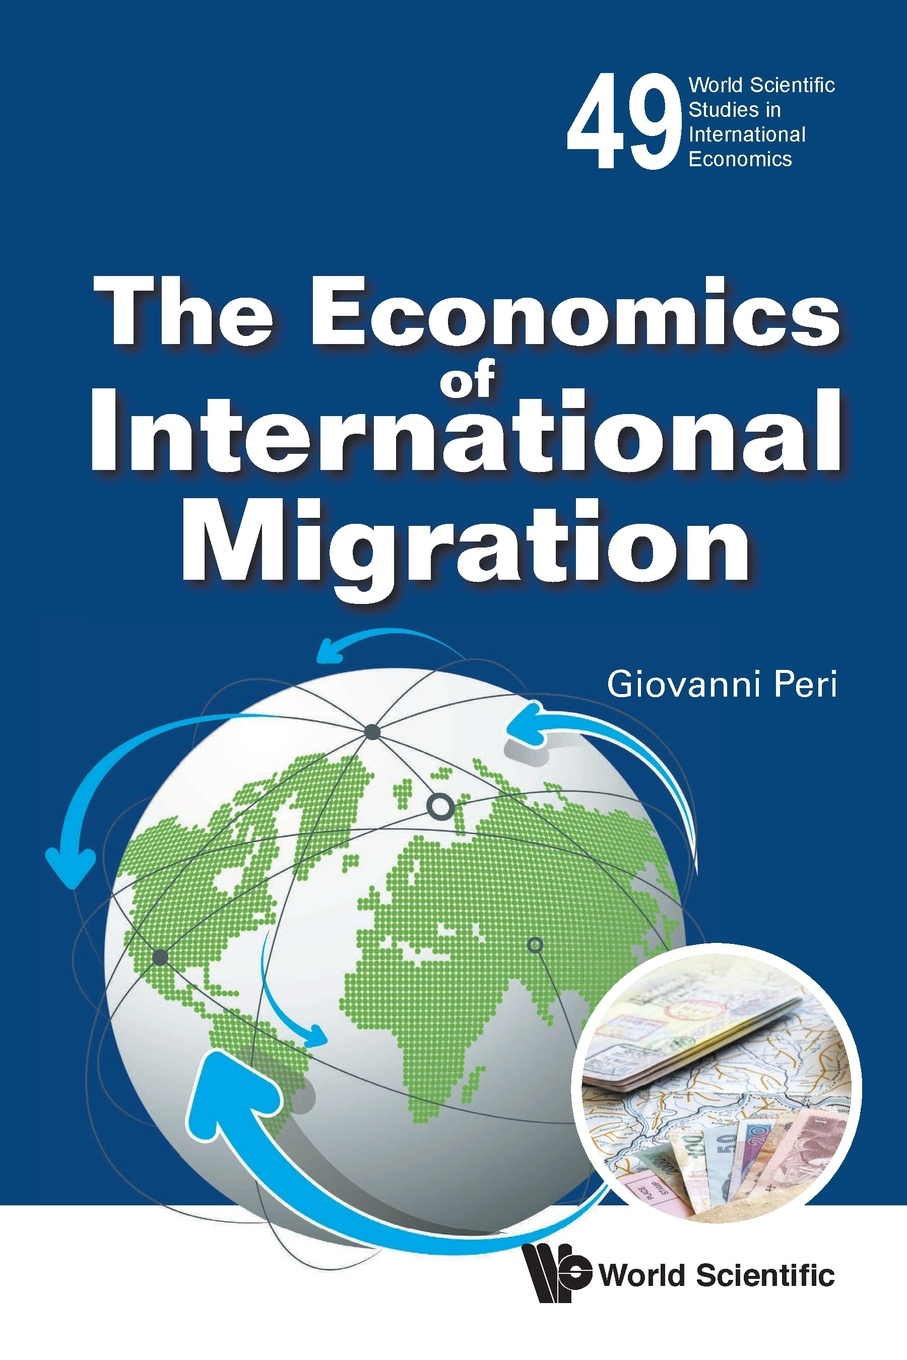 купить Giovanni Peri ECONOMICS OF INTERNATIONAL MIGRATION, THE по цене 7239 рублей